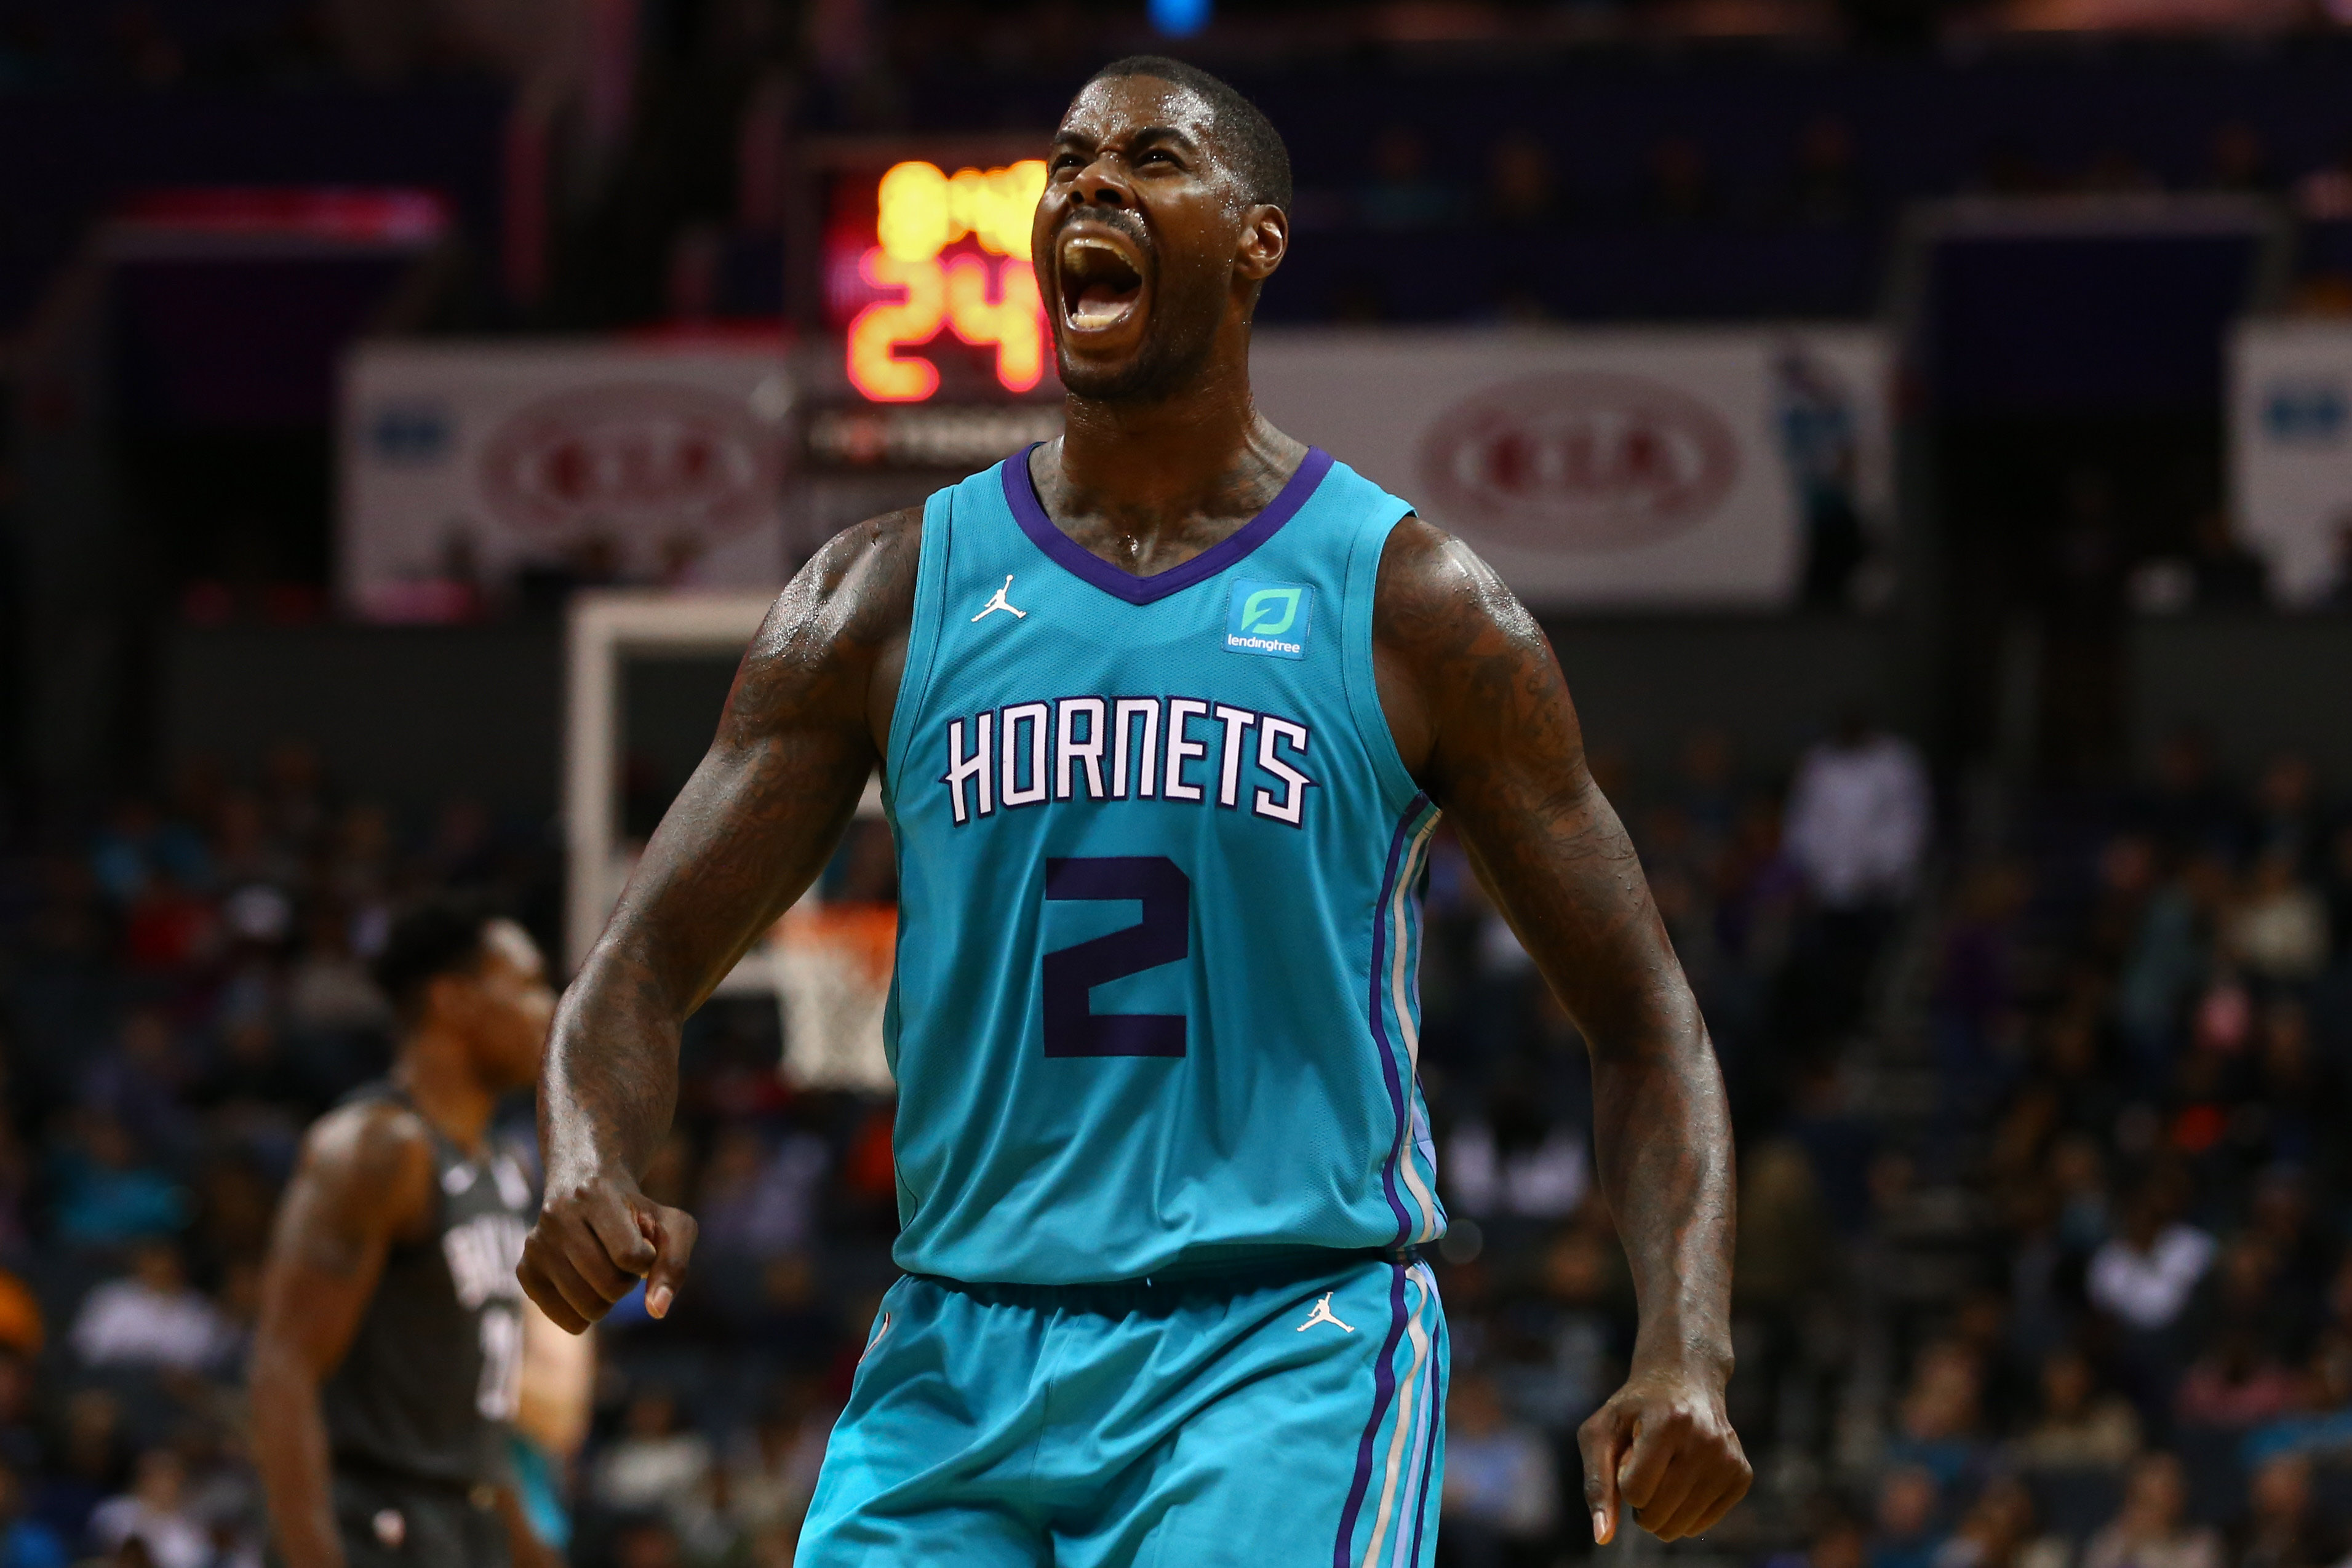 Marvin Williams is mulling retirement, but the Charlotte Hornets forward could still be an NBA trade target